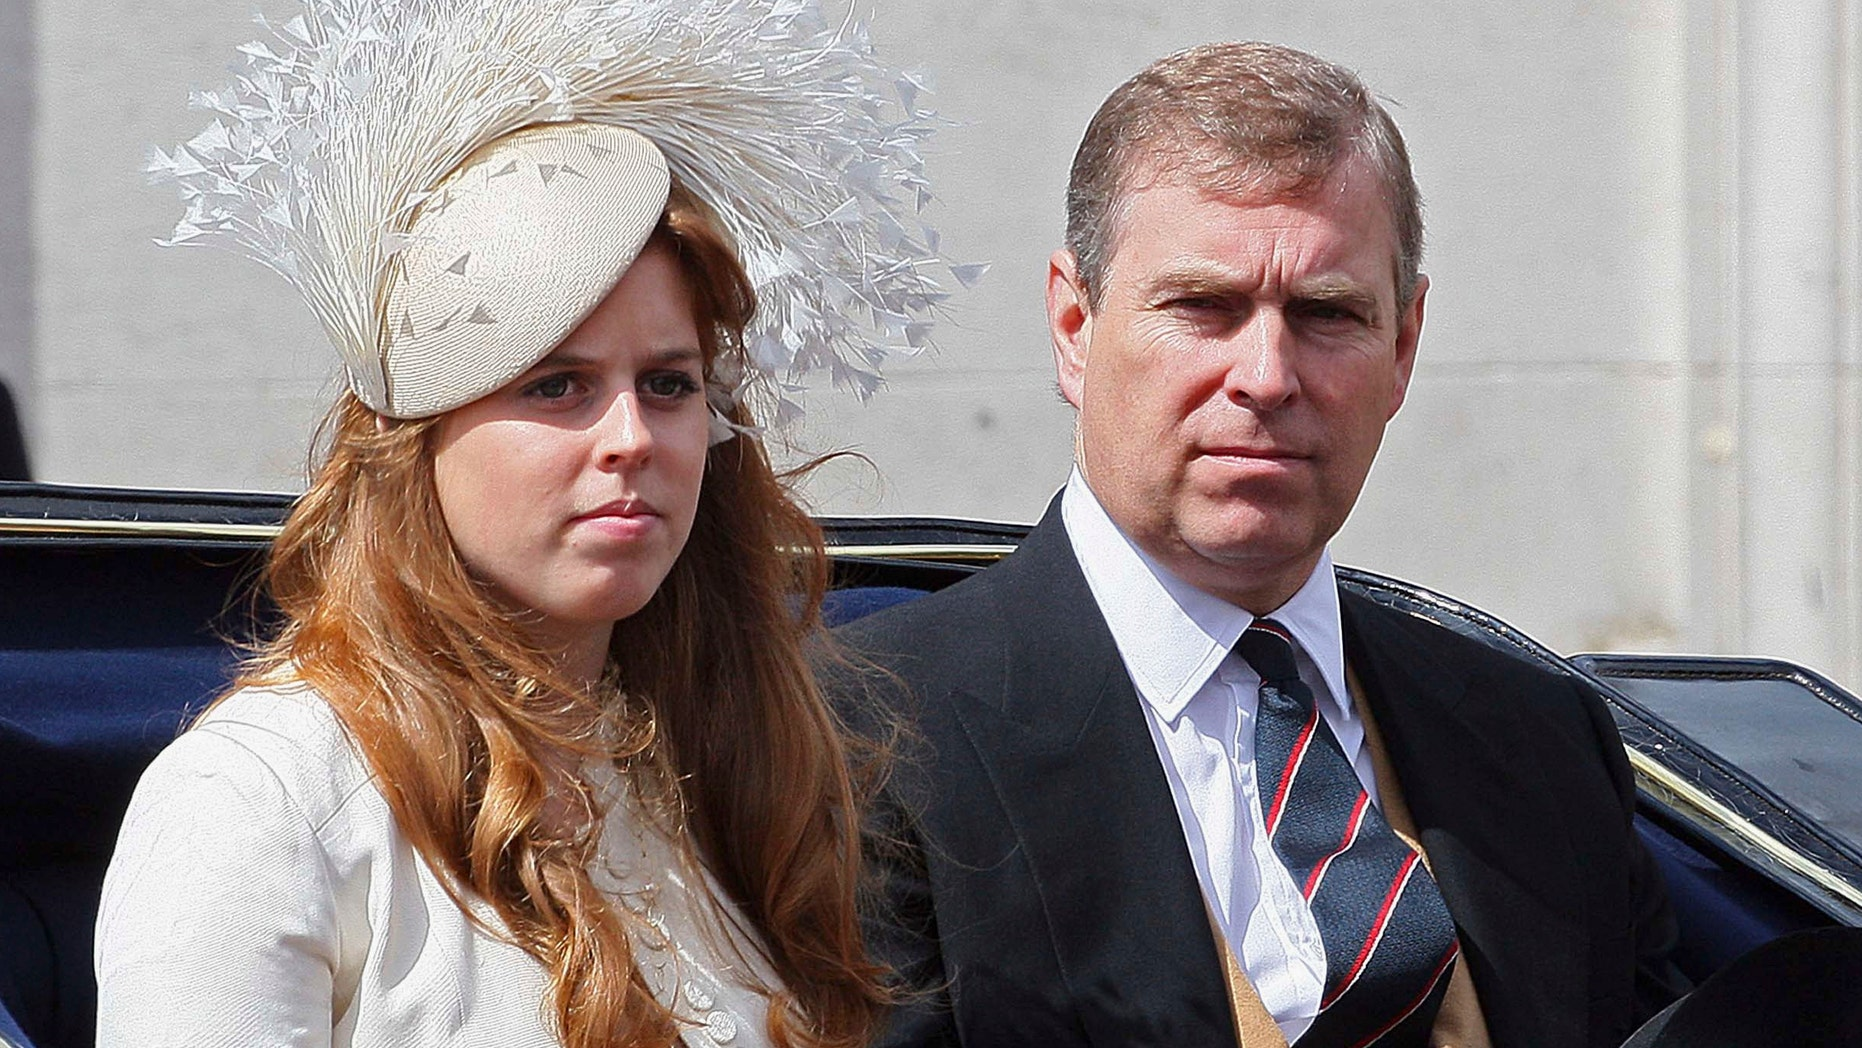 Prince Andrew has left Princess Beatrice wishing she could 'take off to Italy' for 'private' wedding: expert